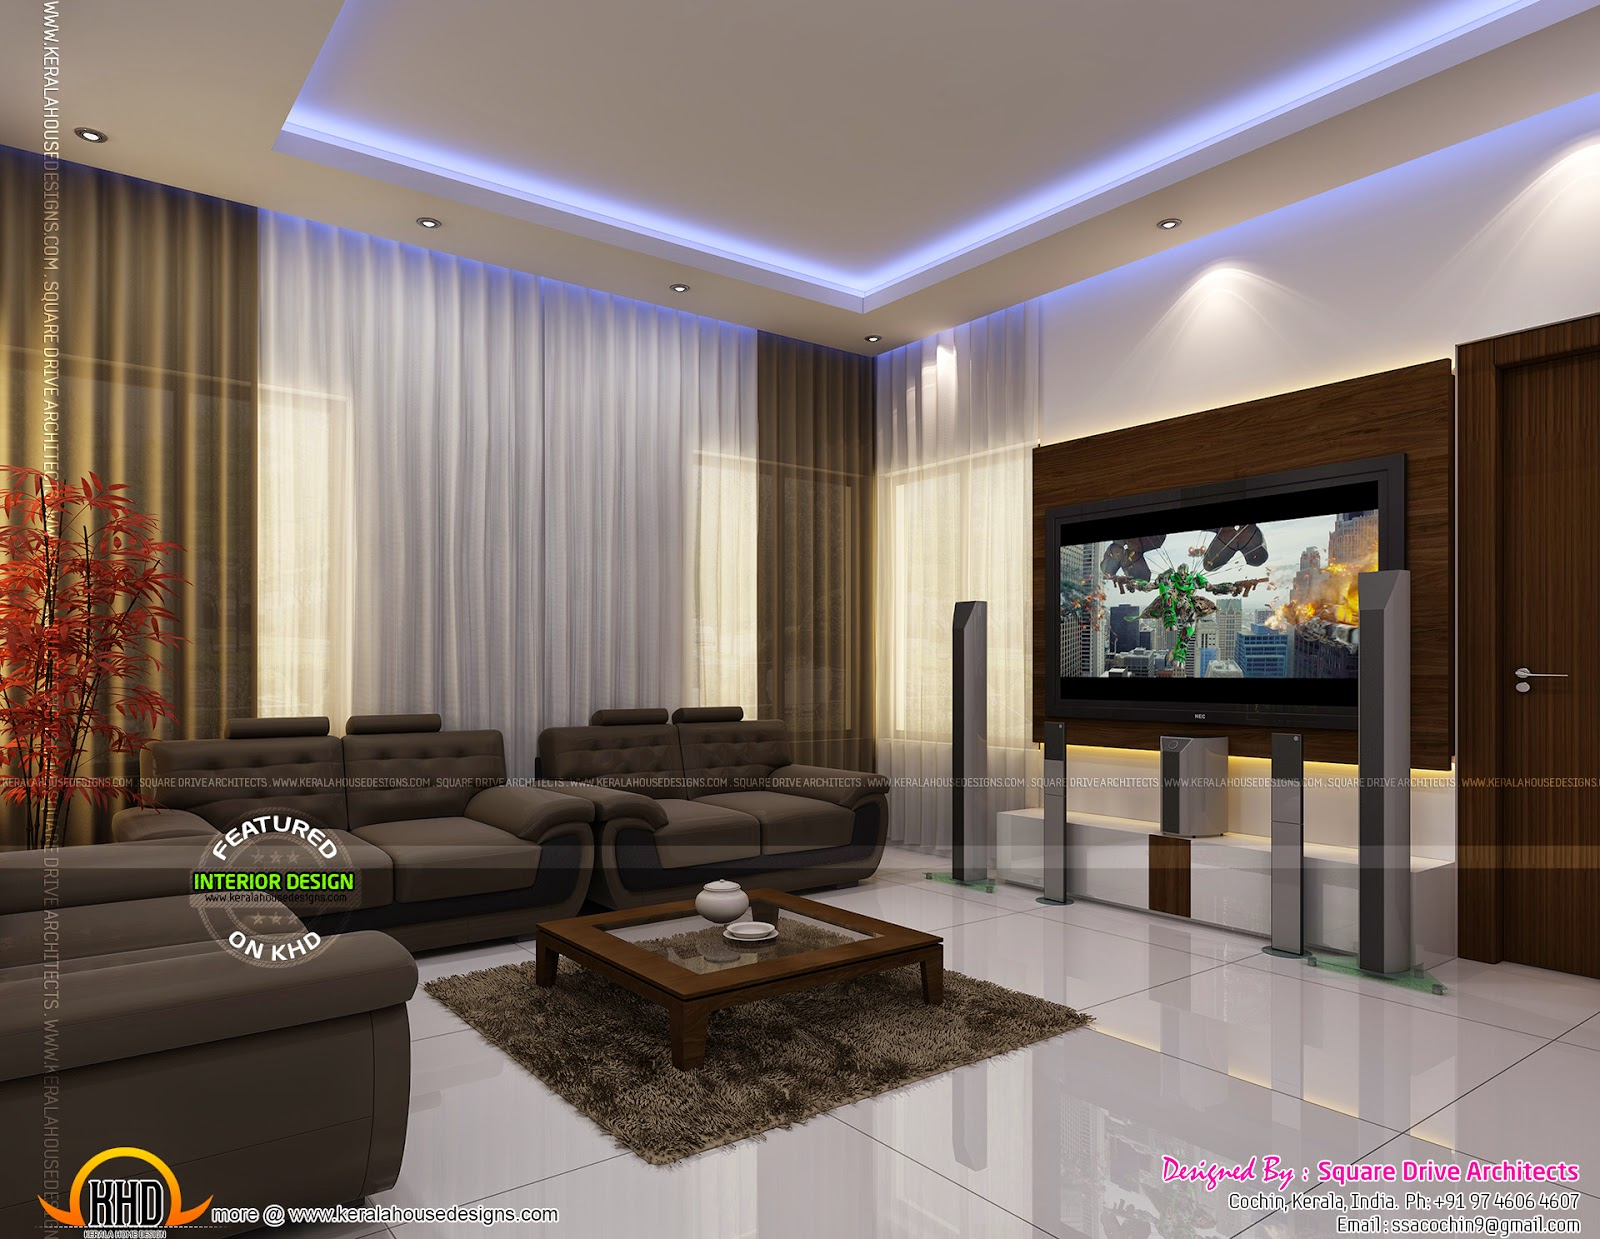 Home interiors designs kerala home design and floor plans for Kerala home living room designs